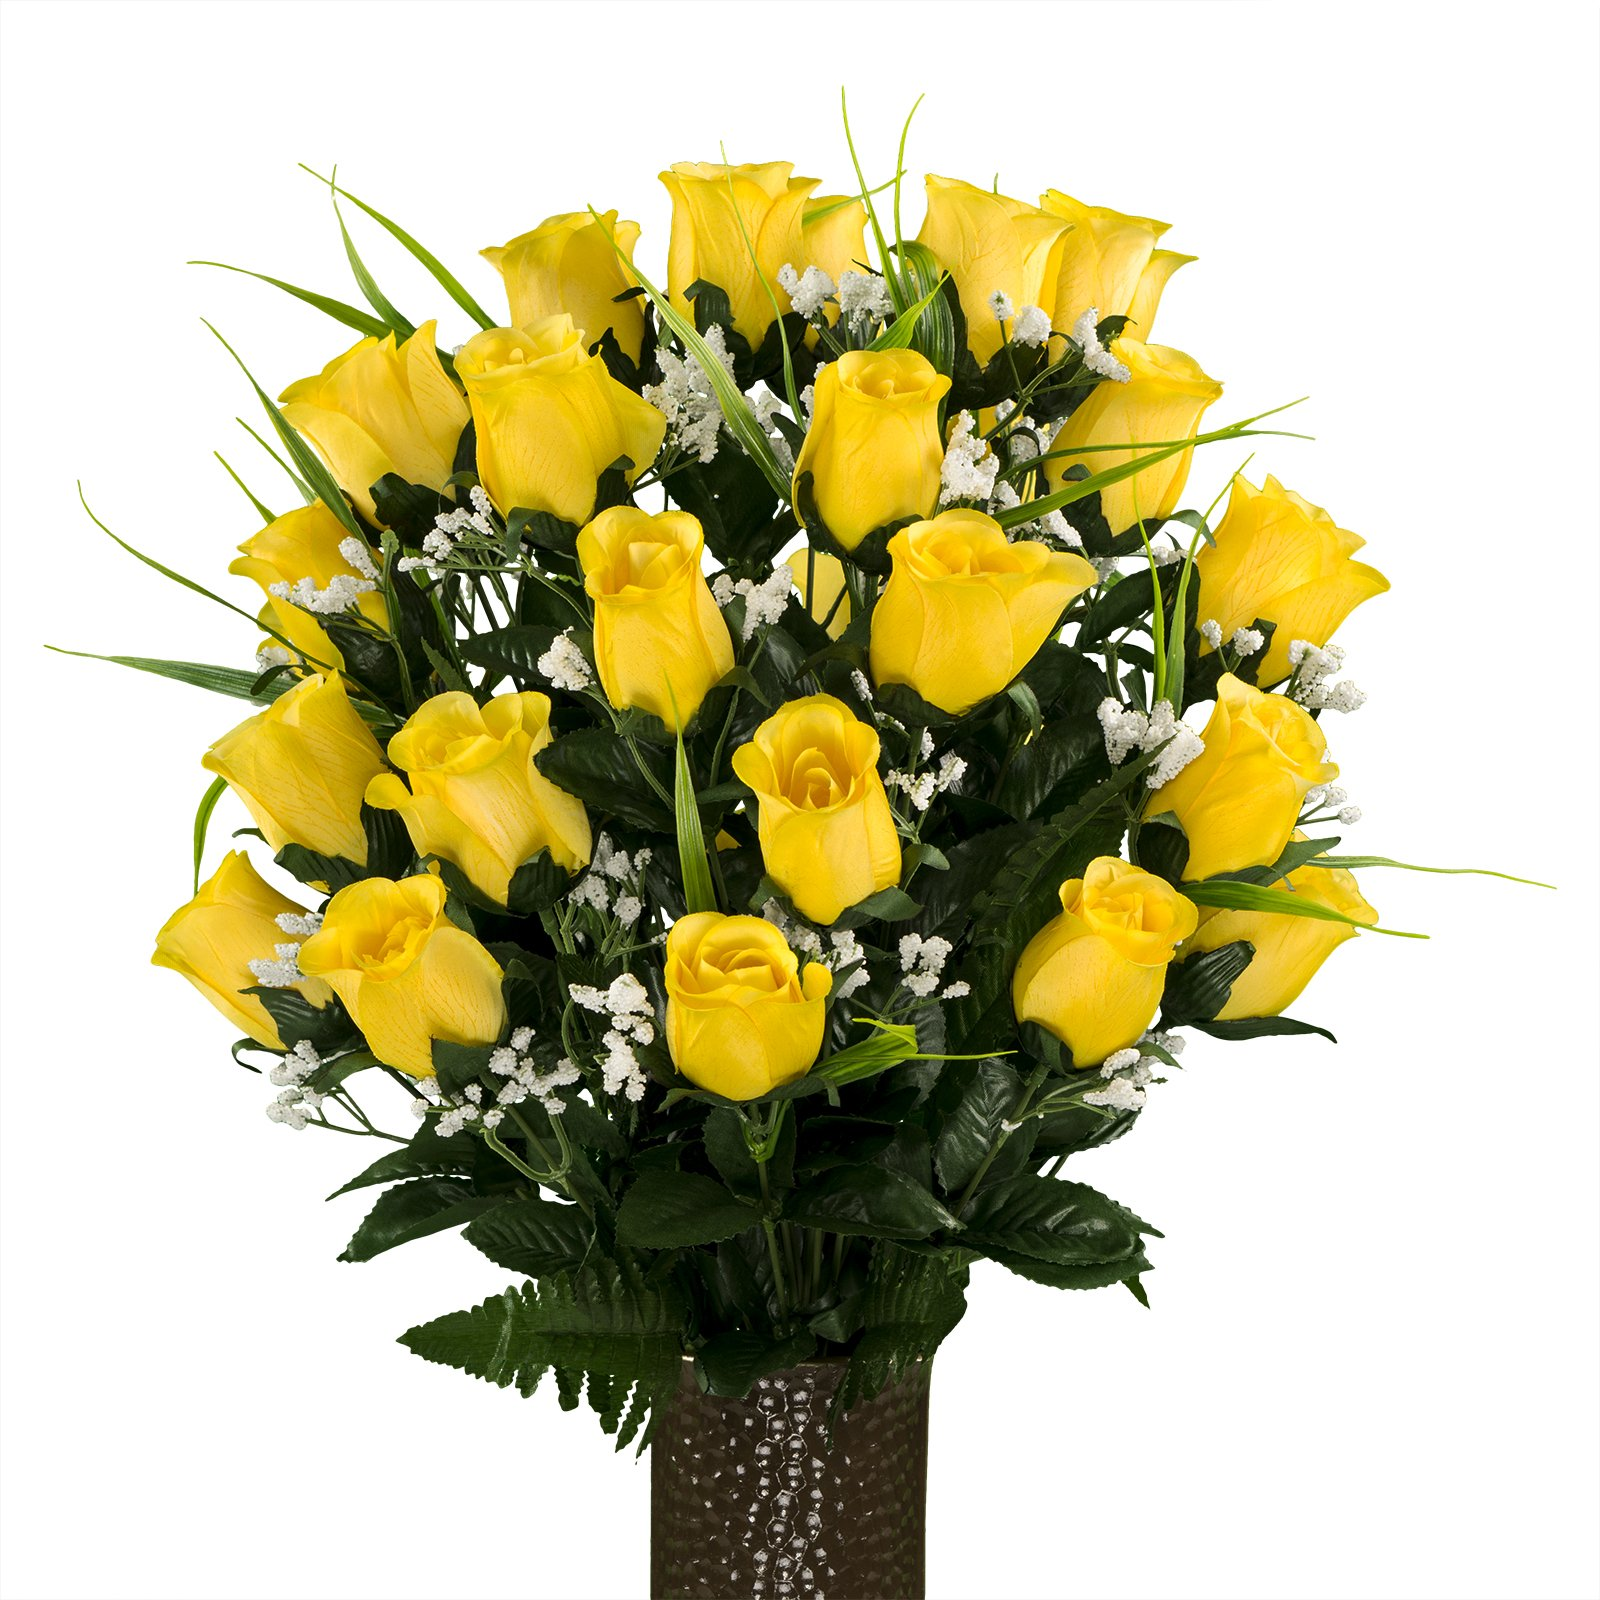 Yellow-Roses-with-Lily-Grass-featuring-the-Stay-In-The-Vase-DesignC-Flower-Holder-MD1994